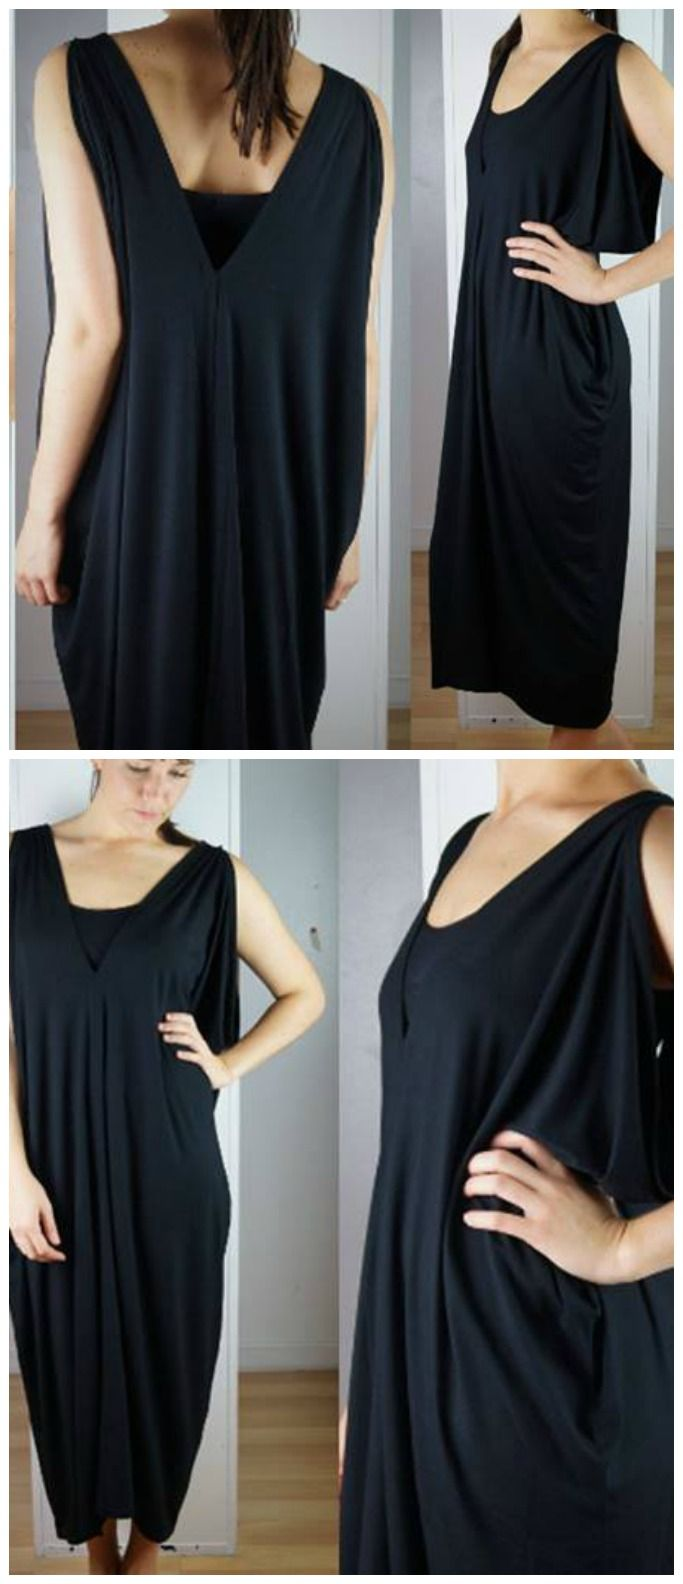 This Grecian style jersey kaftan dress is a great medium between sleek and boho. Compliments your curves and caters well for sizes from 10 through to 22. A great basic that offers enough flair to stand alone while plenty of potential to be jazzed up. This black v-neck drapes stylishly from the shoulders creating dips and flows in all the right places, perfect for our plus size goddesses!  Wrinkle-free and great for travel. <3